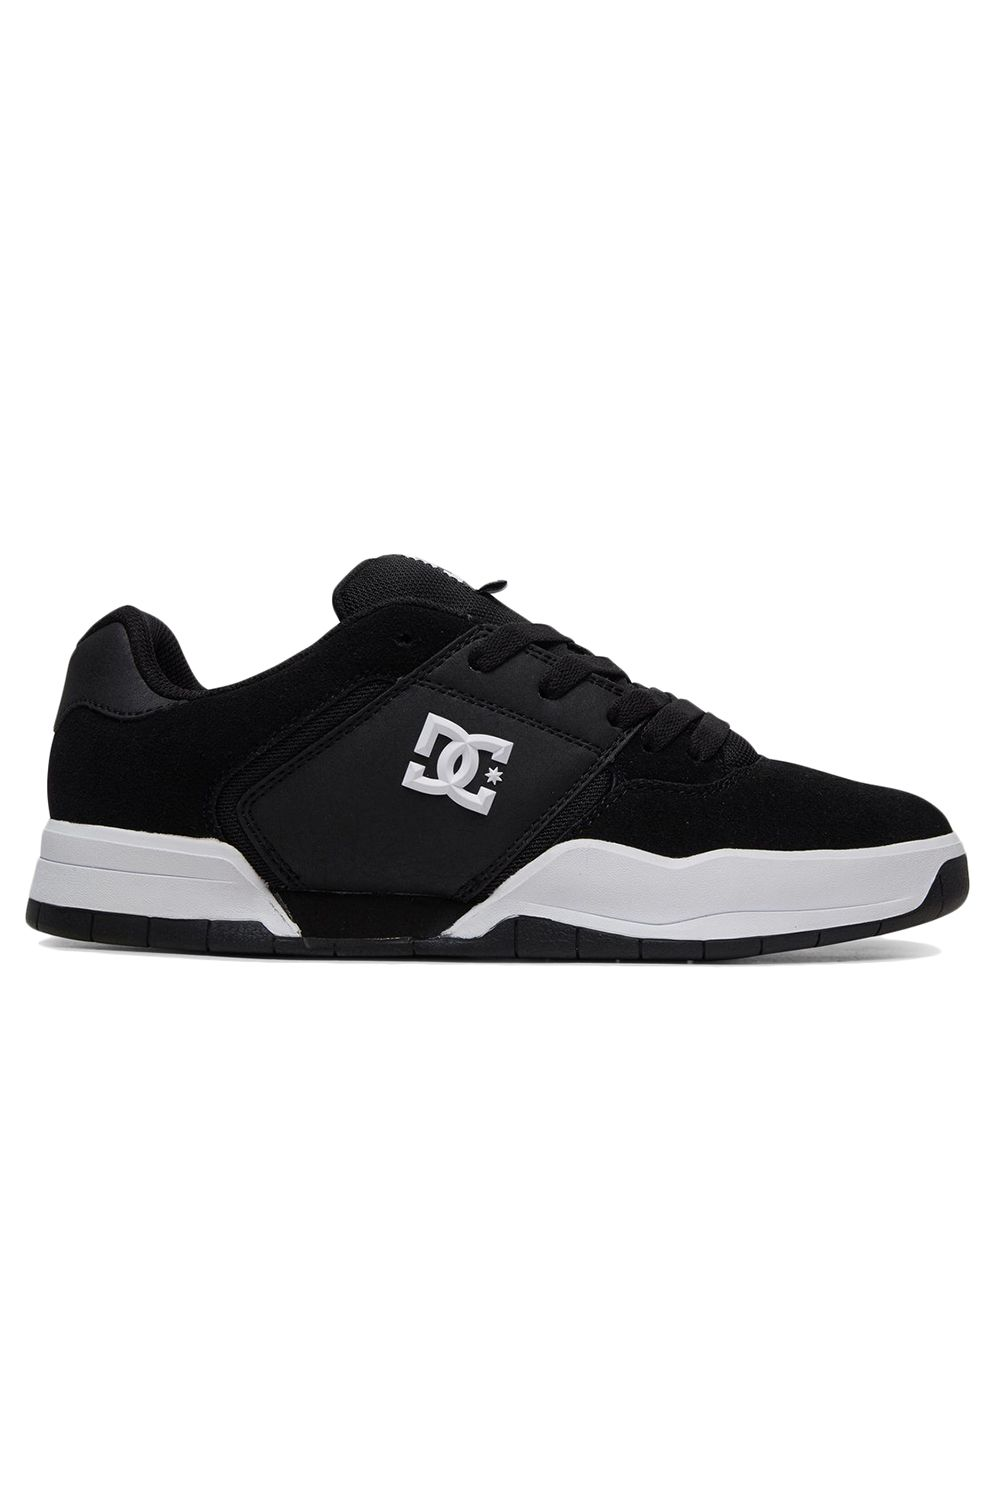 Tenis DC Shoes CENTRAL Black/White